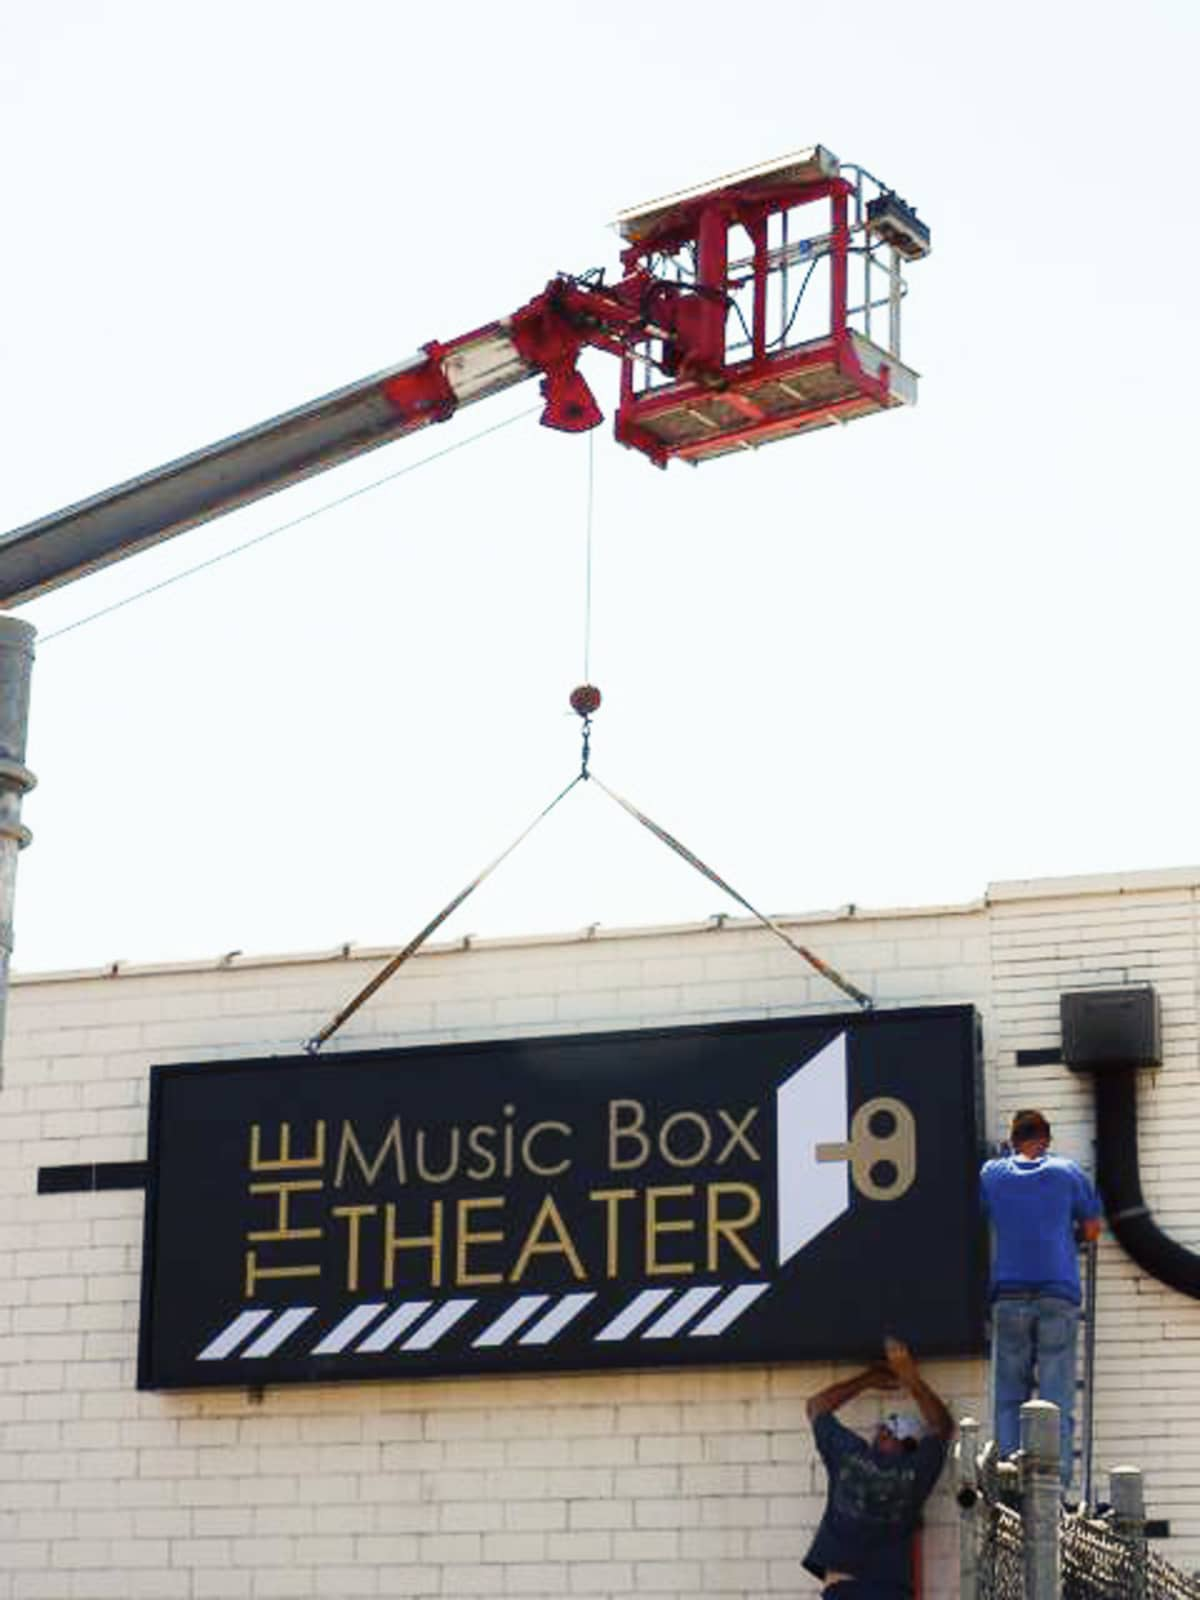 News_Music Box Theater_sign